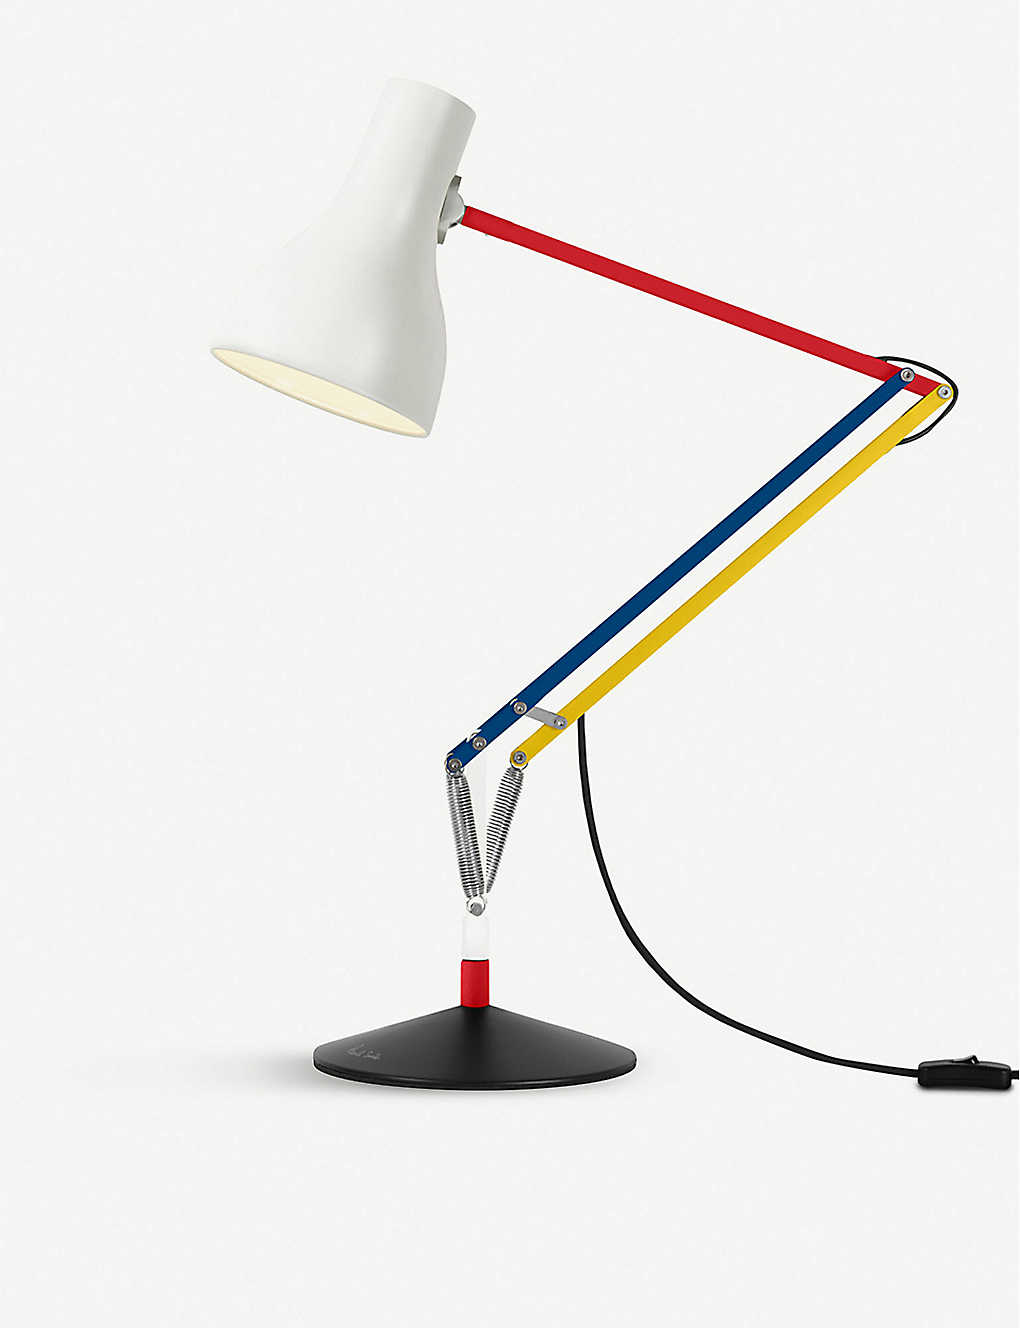 THE CONRAN SHOP: Paul Smith for Anglepoise Type 75 Edition Two lamp 66cm